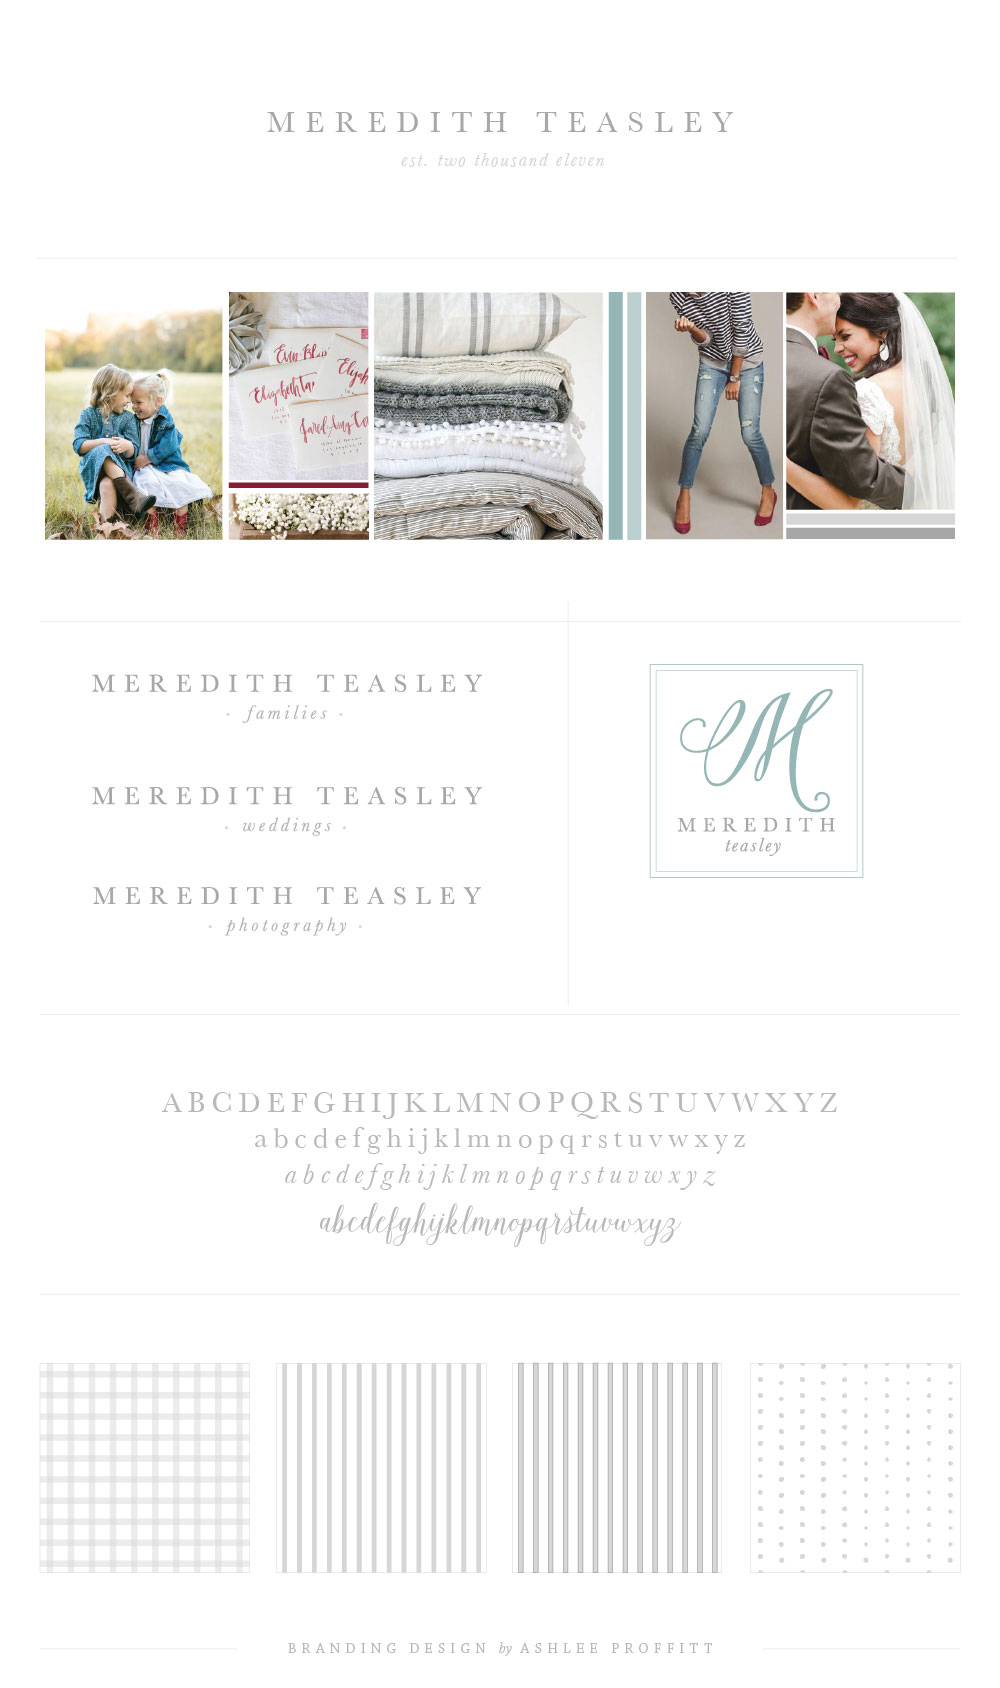 Meredith Teasley Brand Elements by Ashlee Proffitt